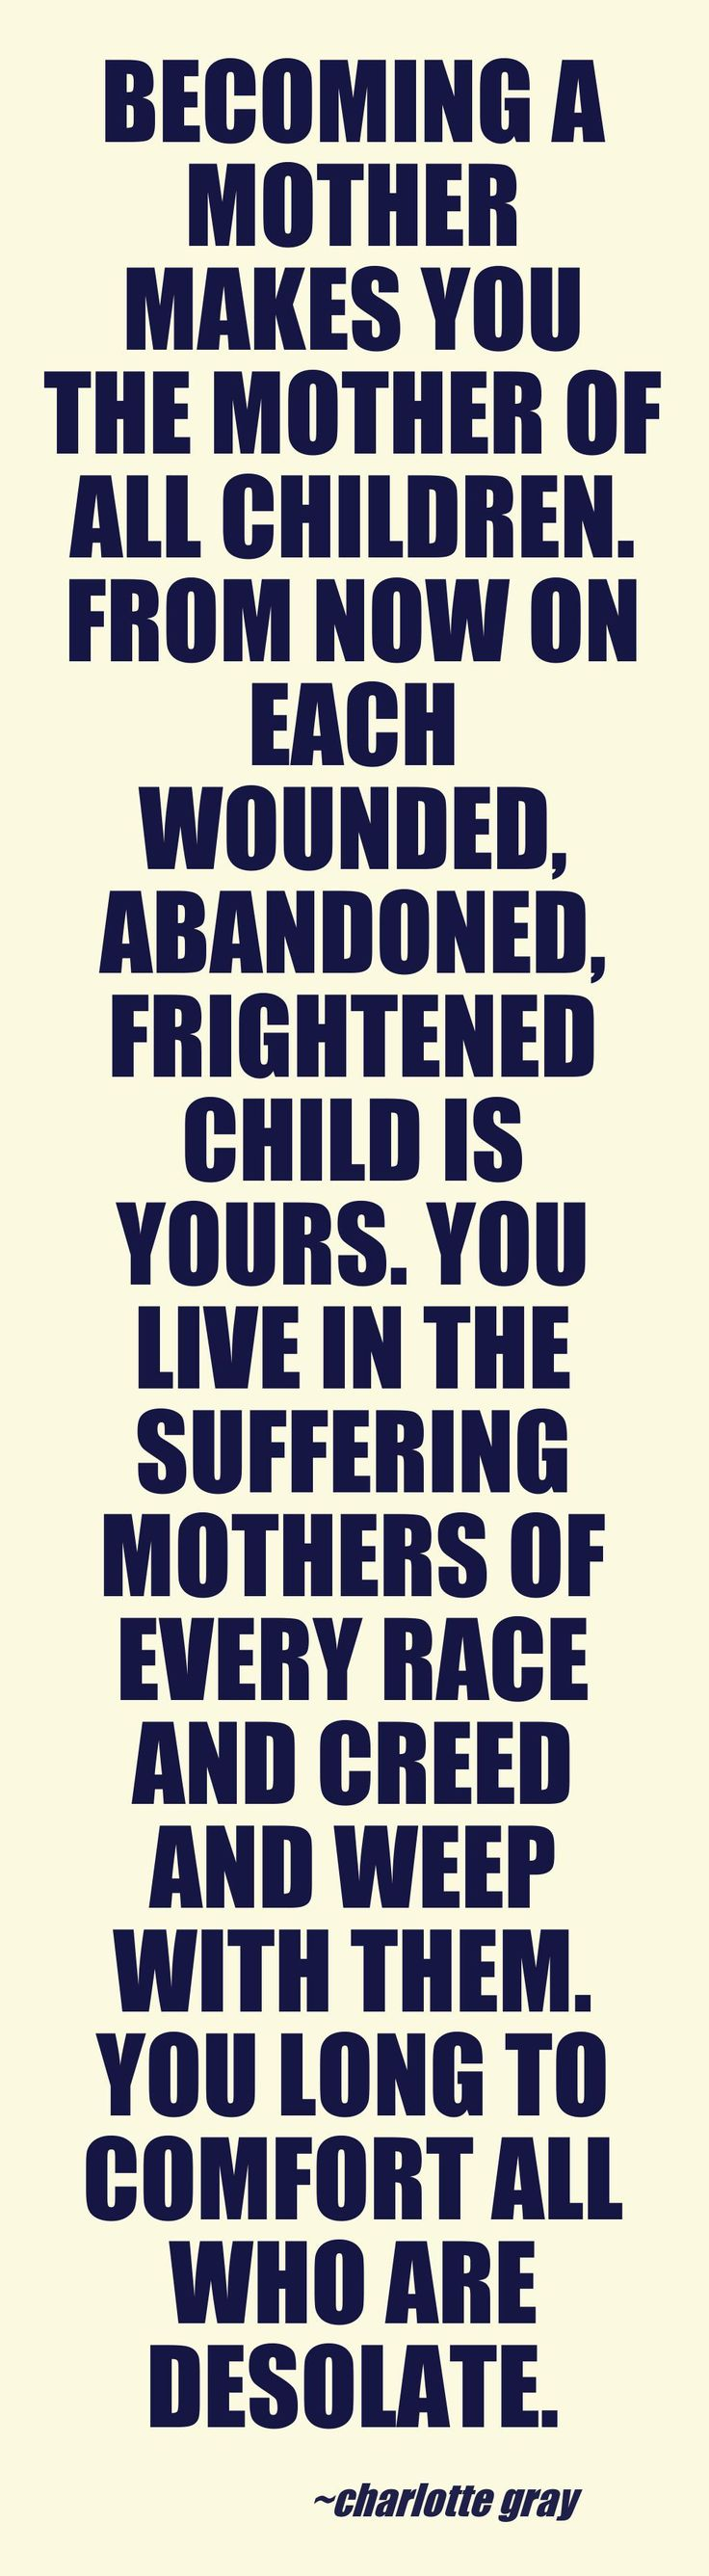 Quotes For New Parents Best 25 New Mother Quotes Ideas On Pinterest  New Mom Quotes